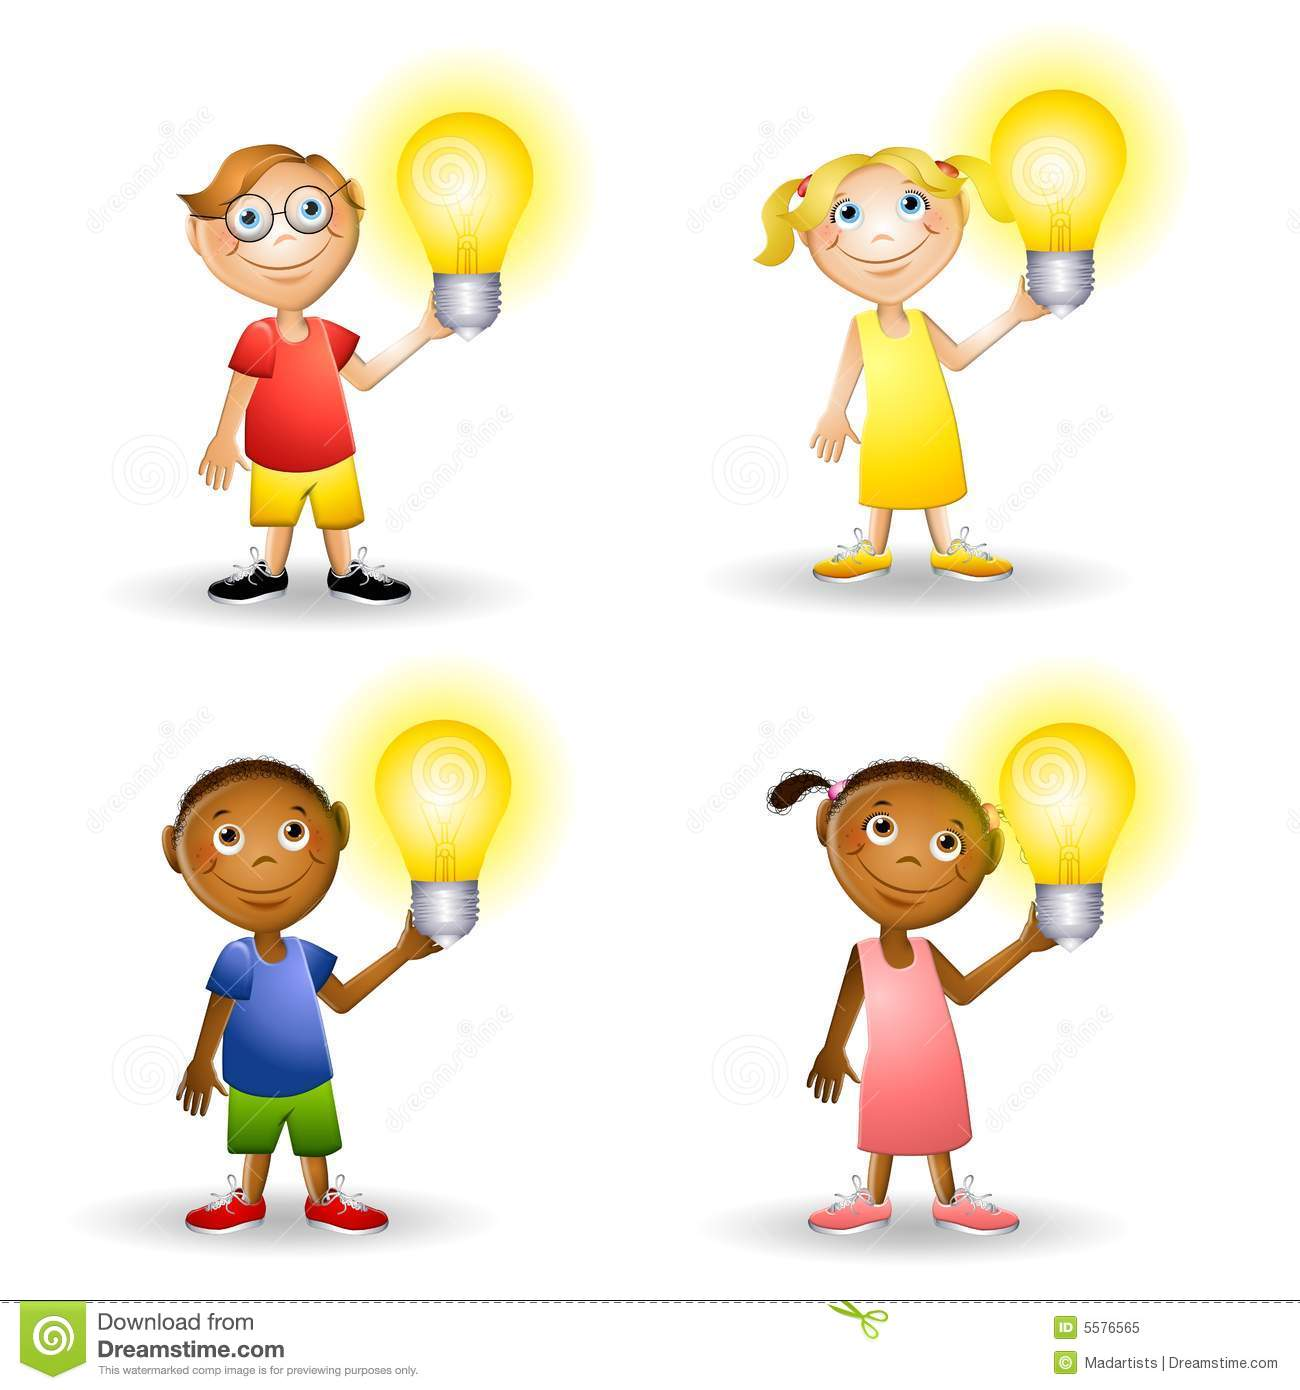 ... kids holding lightbulbs to represent having an idea or energy issues